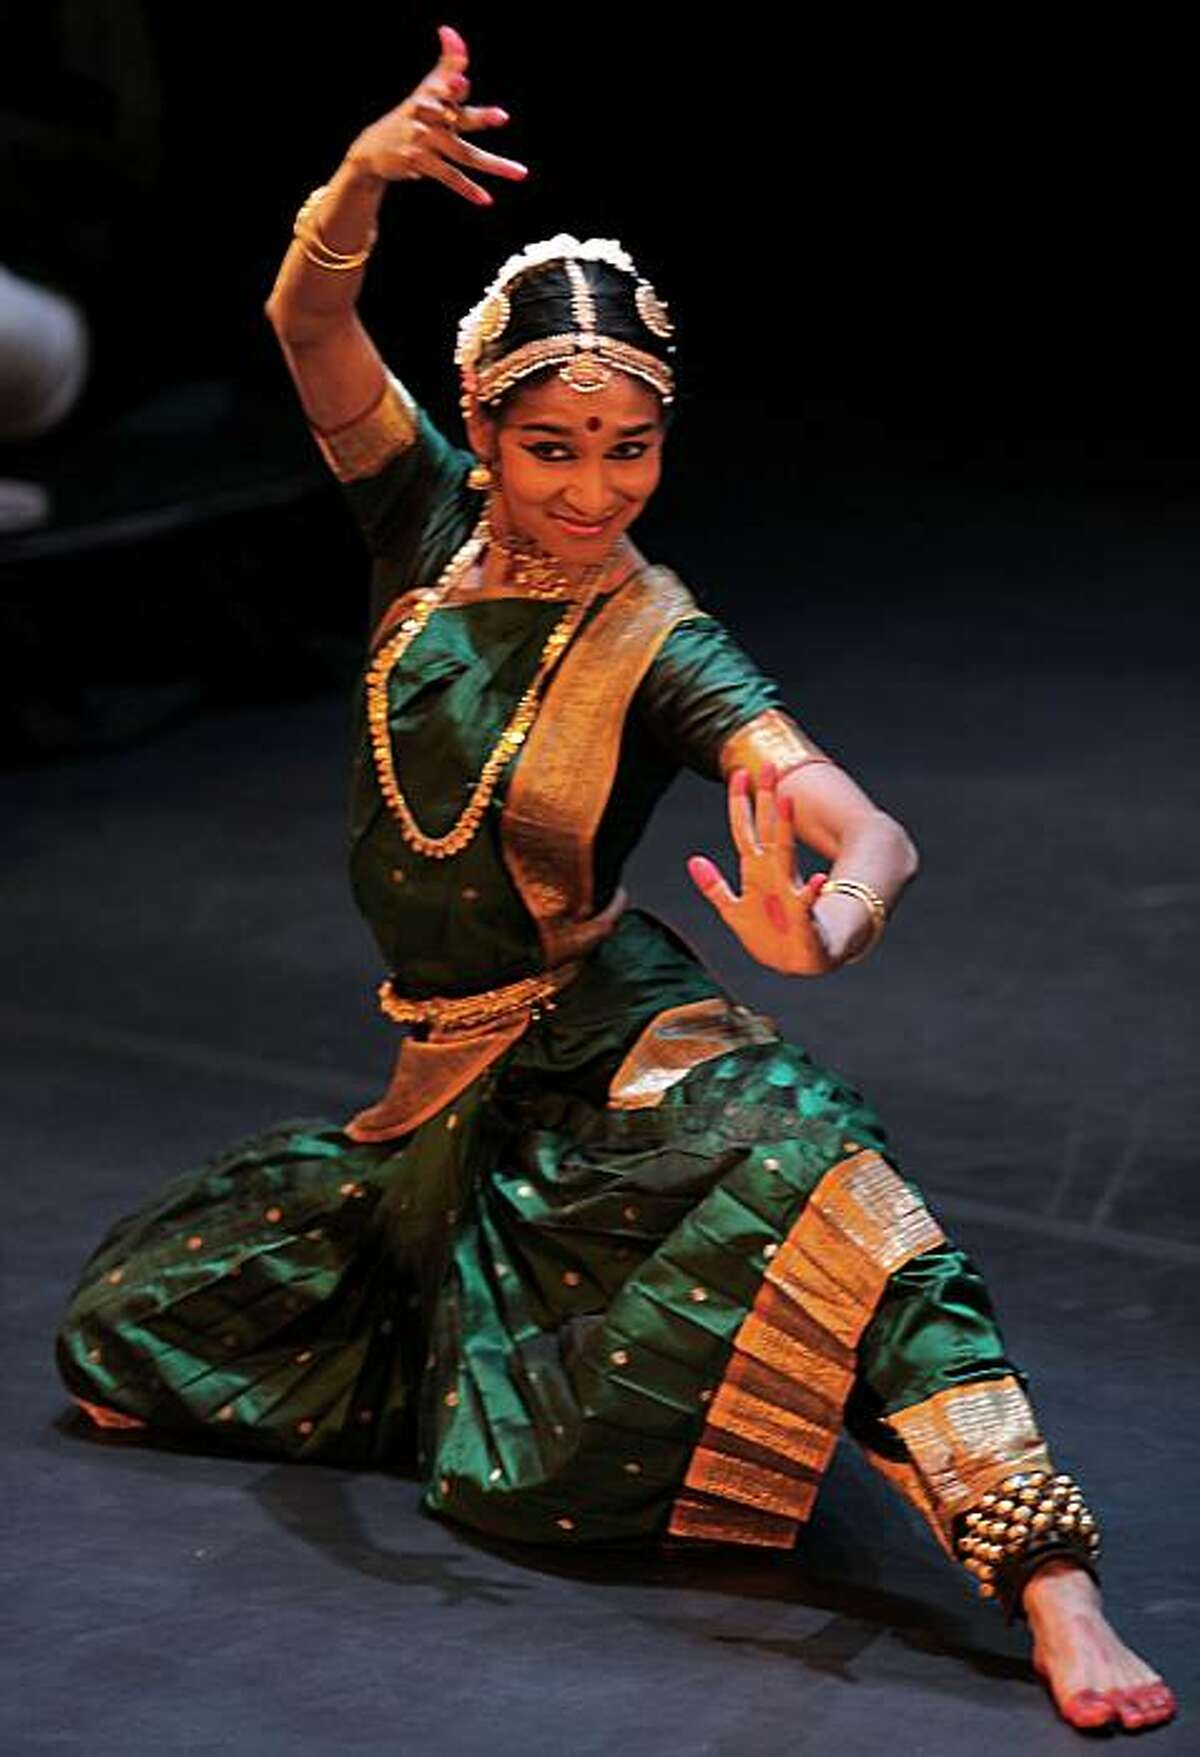 Shantala Shivalingappa, a classical Indian Kuchipudi dancer performing at Herbst Theater in San Francisco, Ca., on Thursday, February 4, 2010.